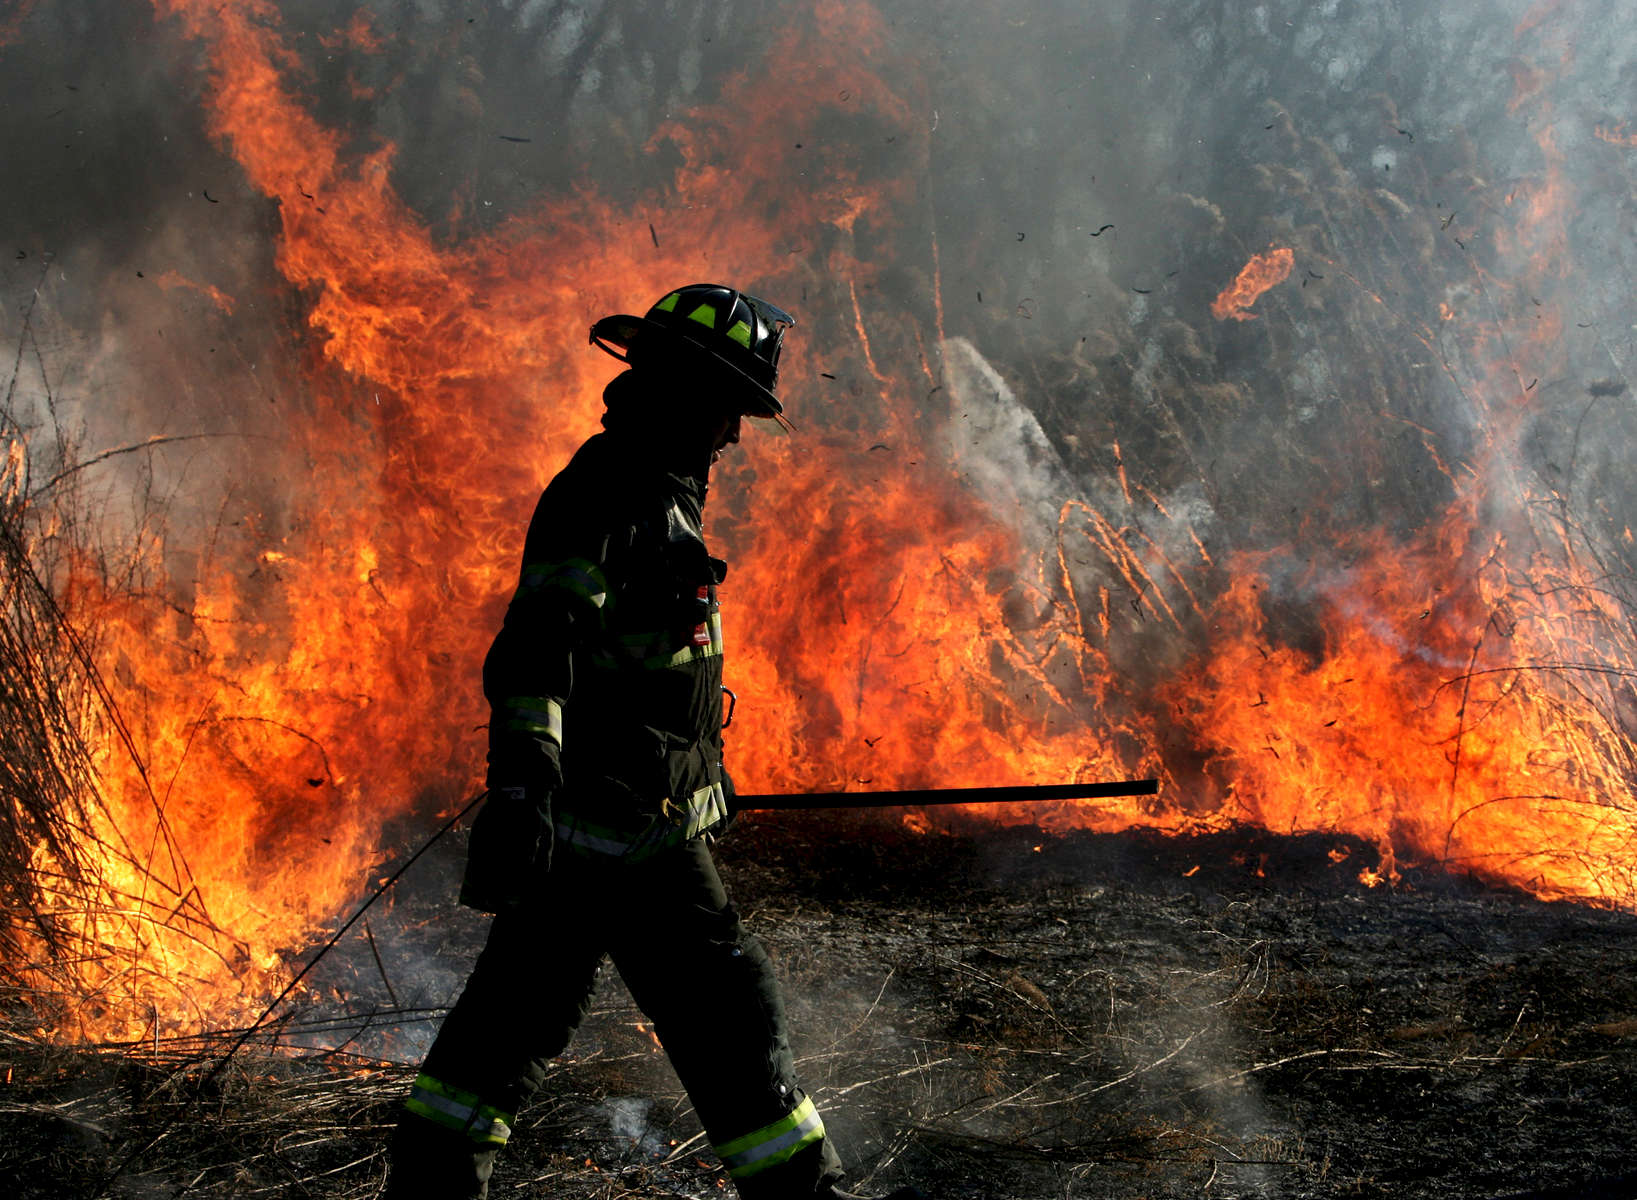 Firefighters battle a 2nd alarm brush fire in Kissena Park located at the corner of Parsons Boulevard and Booth Memorial Avenue in Flushing, Queens on February 11, 2007.